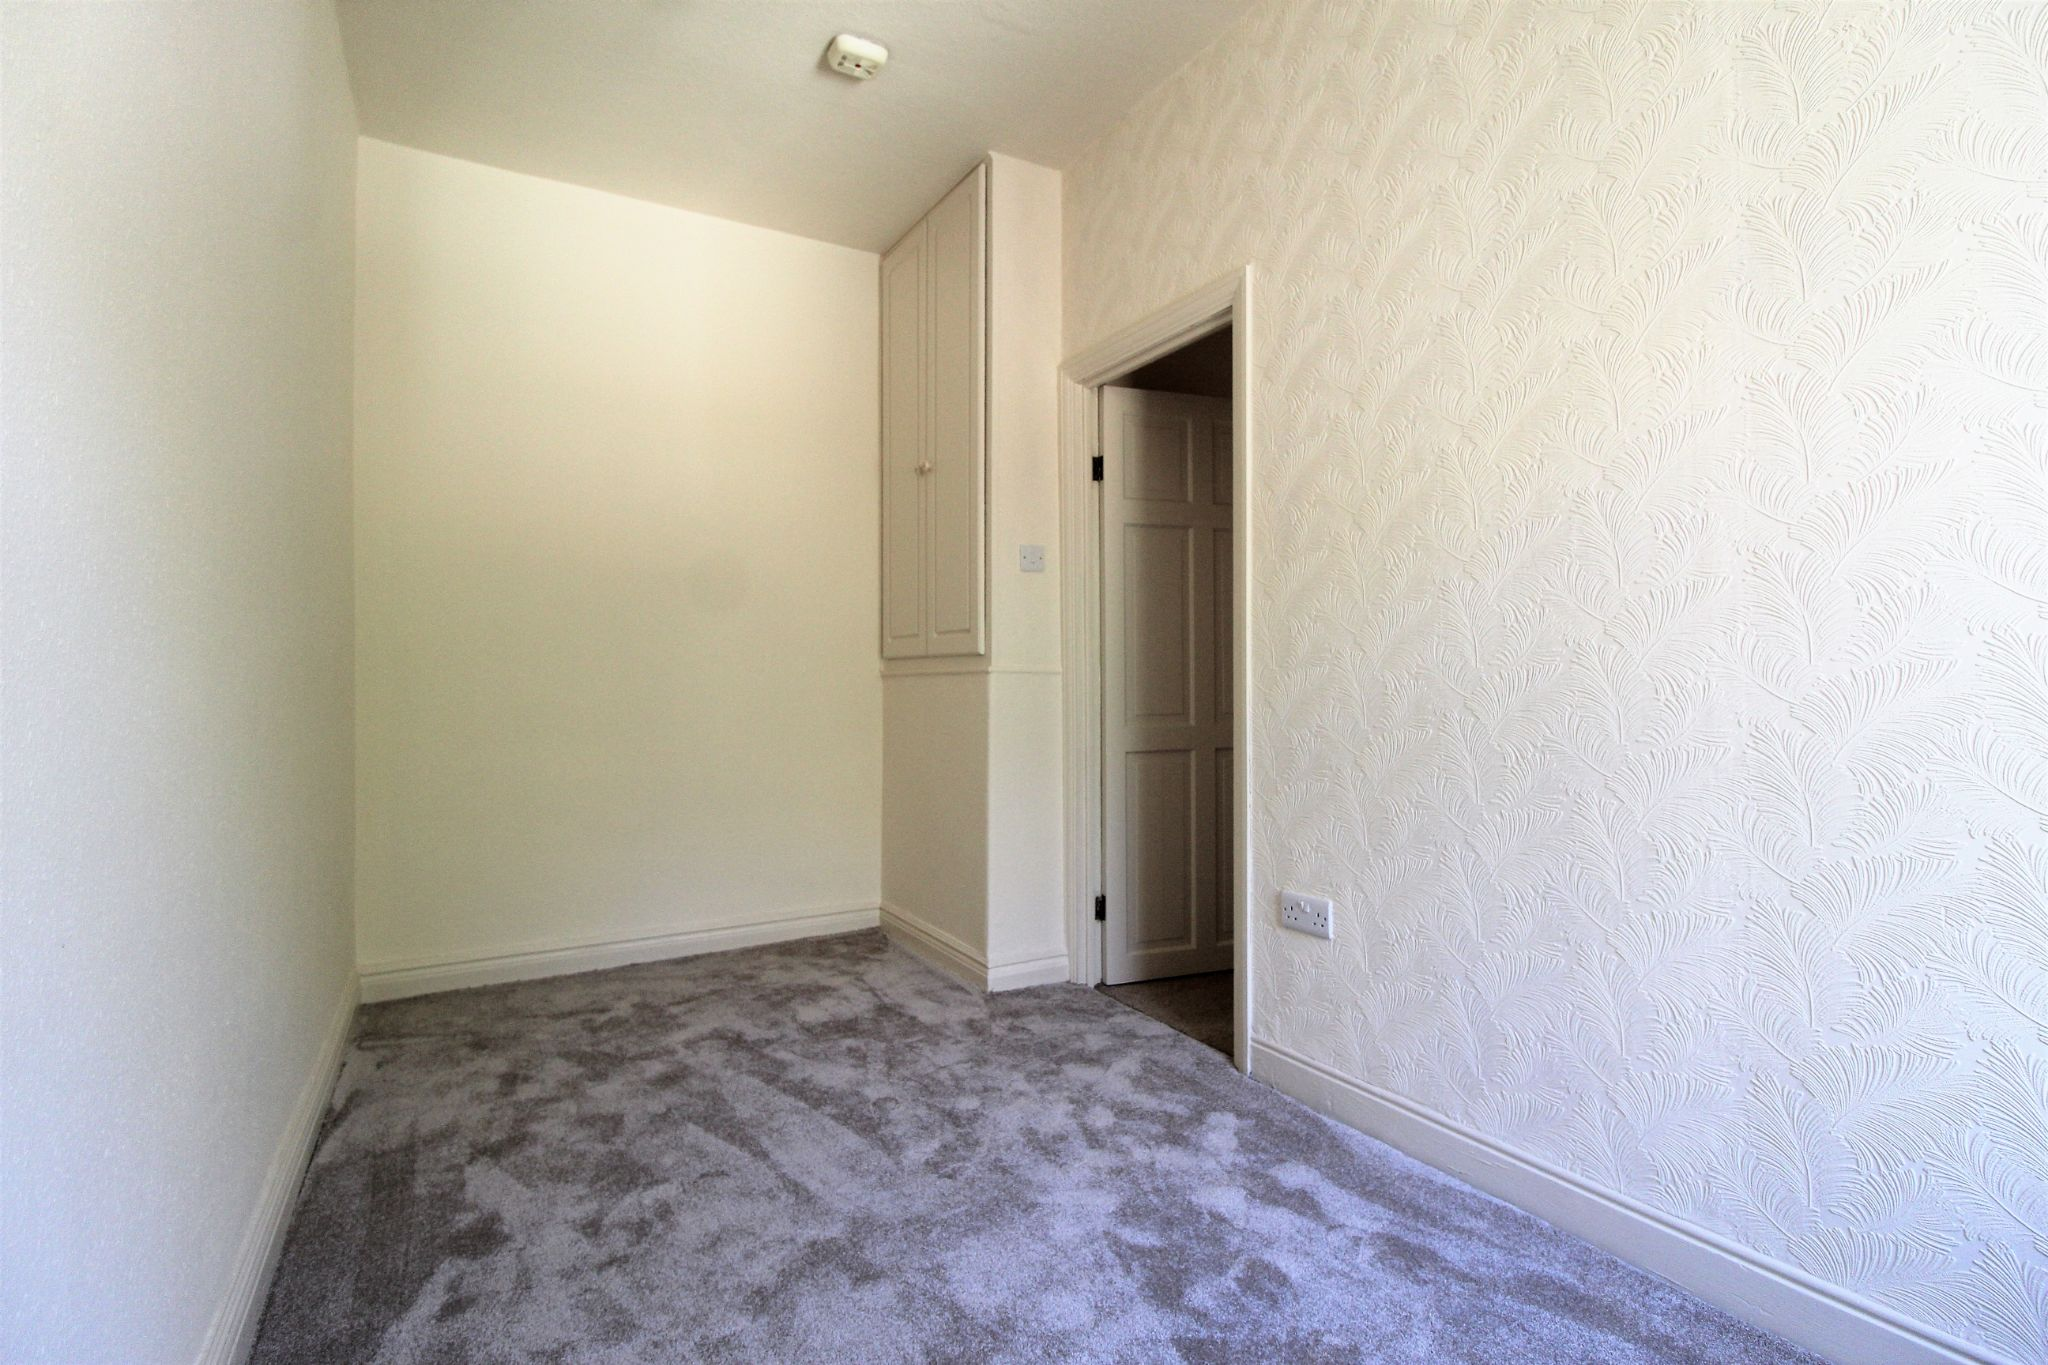 2 bedroom mid terraced house SSTC in Brighouse - Photograph 17